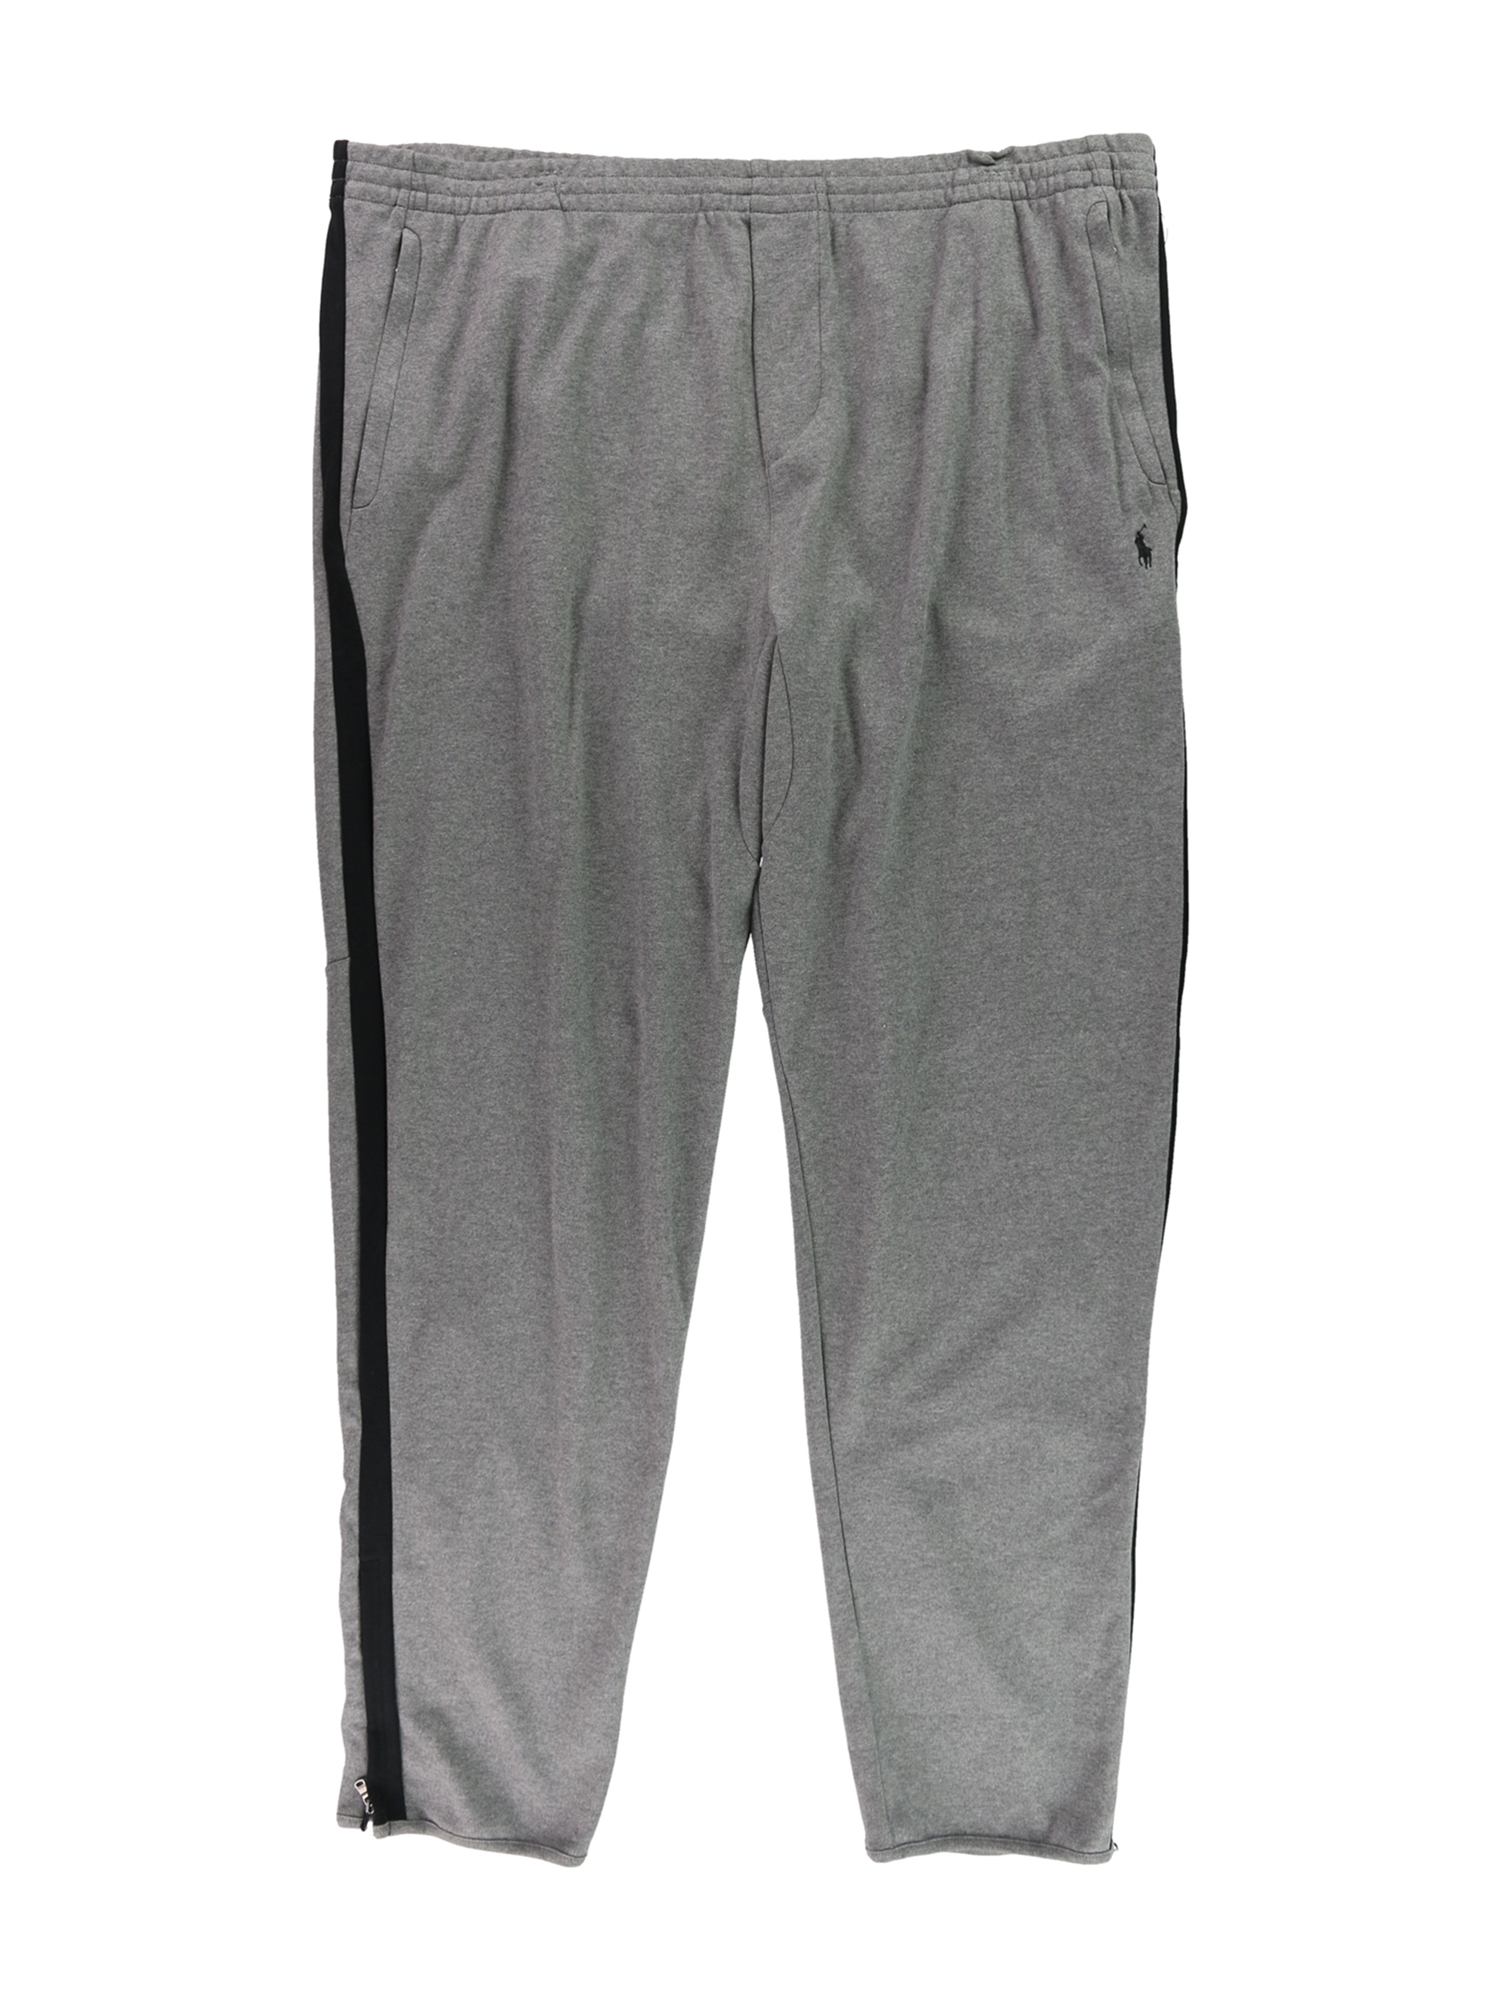 Ralph Lauren Mens Knit Track Casual Jogger Pants